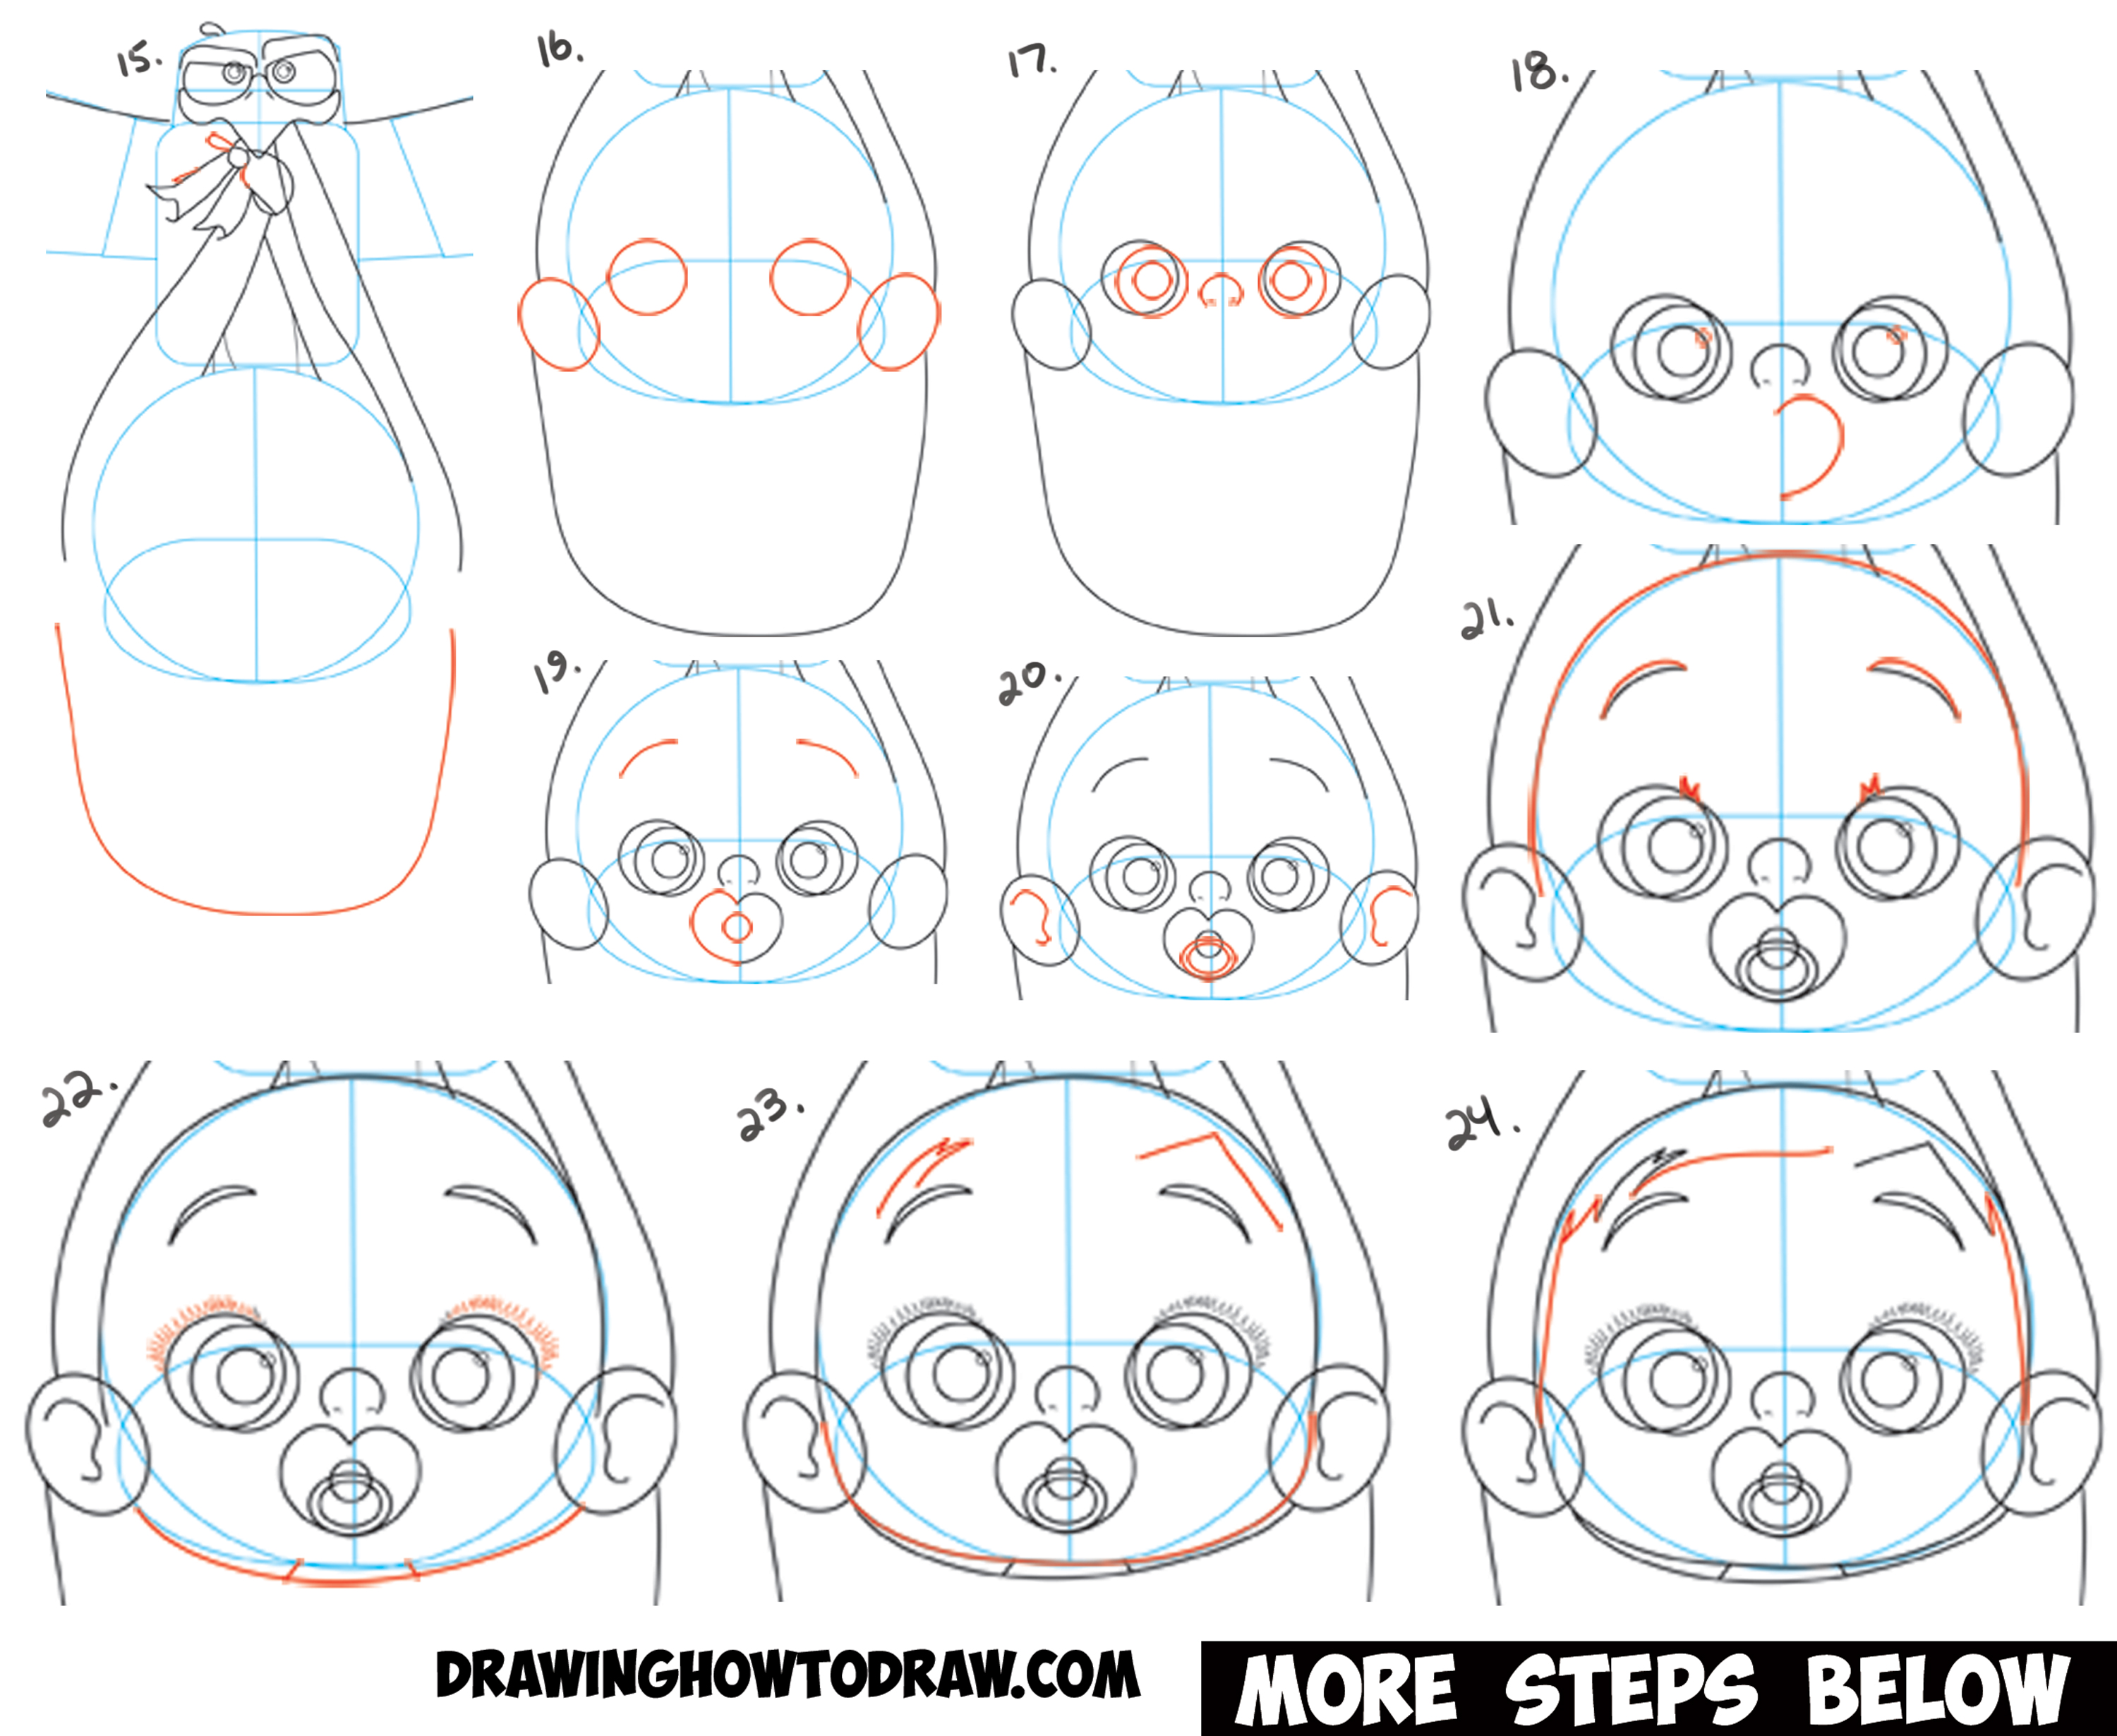 How to Draw Without Taking Classes: 12 Steps (with Pictures)